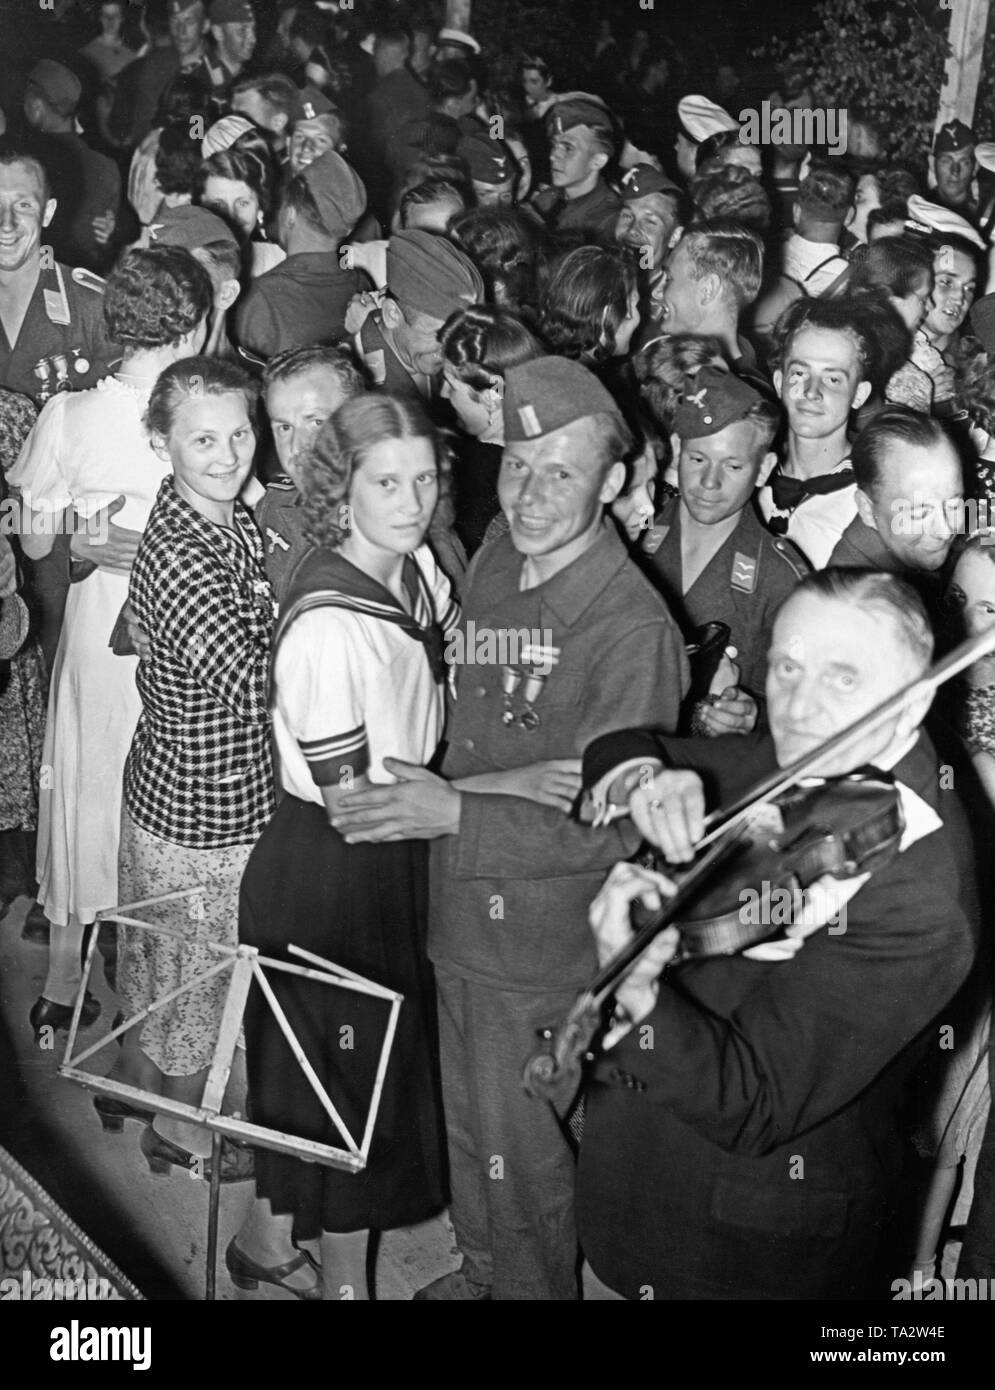 Photo of a group of soldiers of the Condor Legion (army and air force) in uniform and women from Berlin during a dance after the victory parade of the troop in Mitte (Berlin) on the evening of June 6, 1939, in Doeberitz. The cheerful bivouac was organized by the Legion and the NSG 'Kraft durch Freude' (Nazi Organization 'Strength through Joy'). There were bivouac bonfire, open-air performances and firework. In the foreground is a violinist. - Stock Image